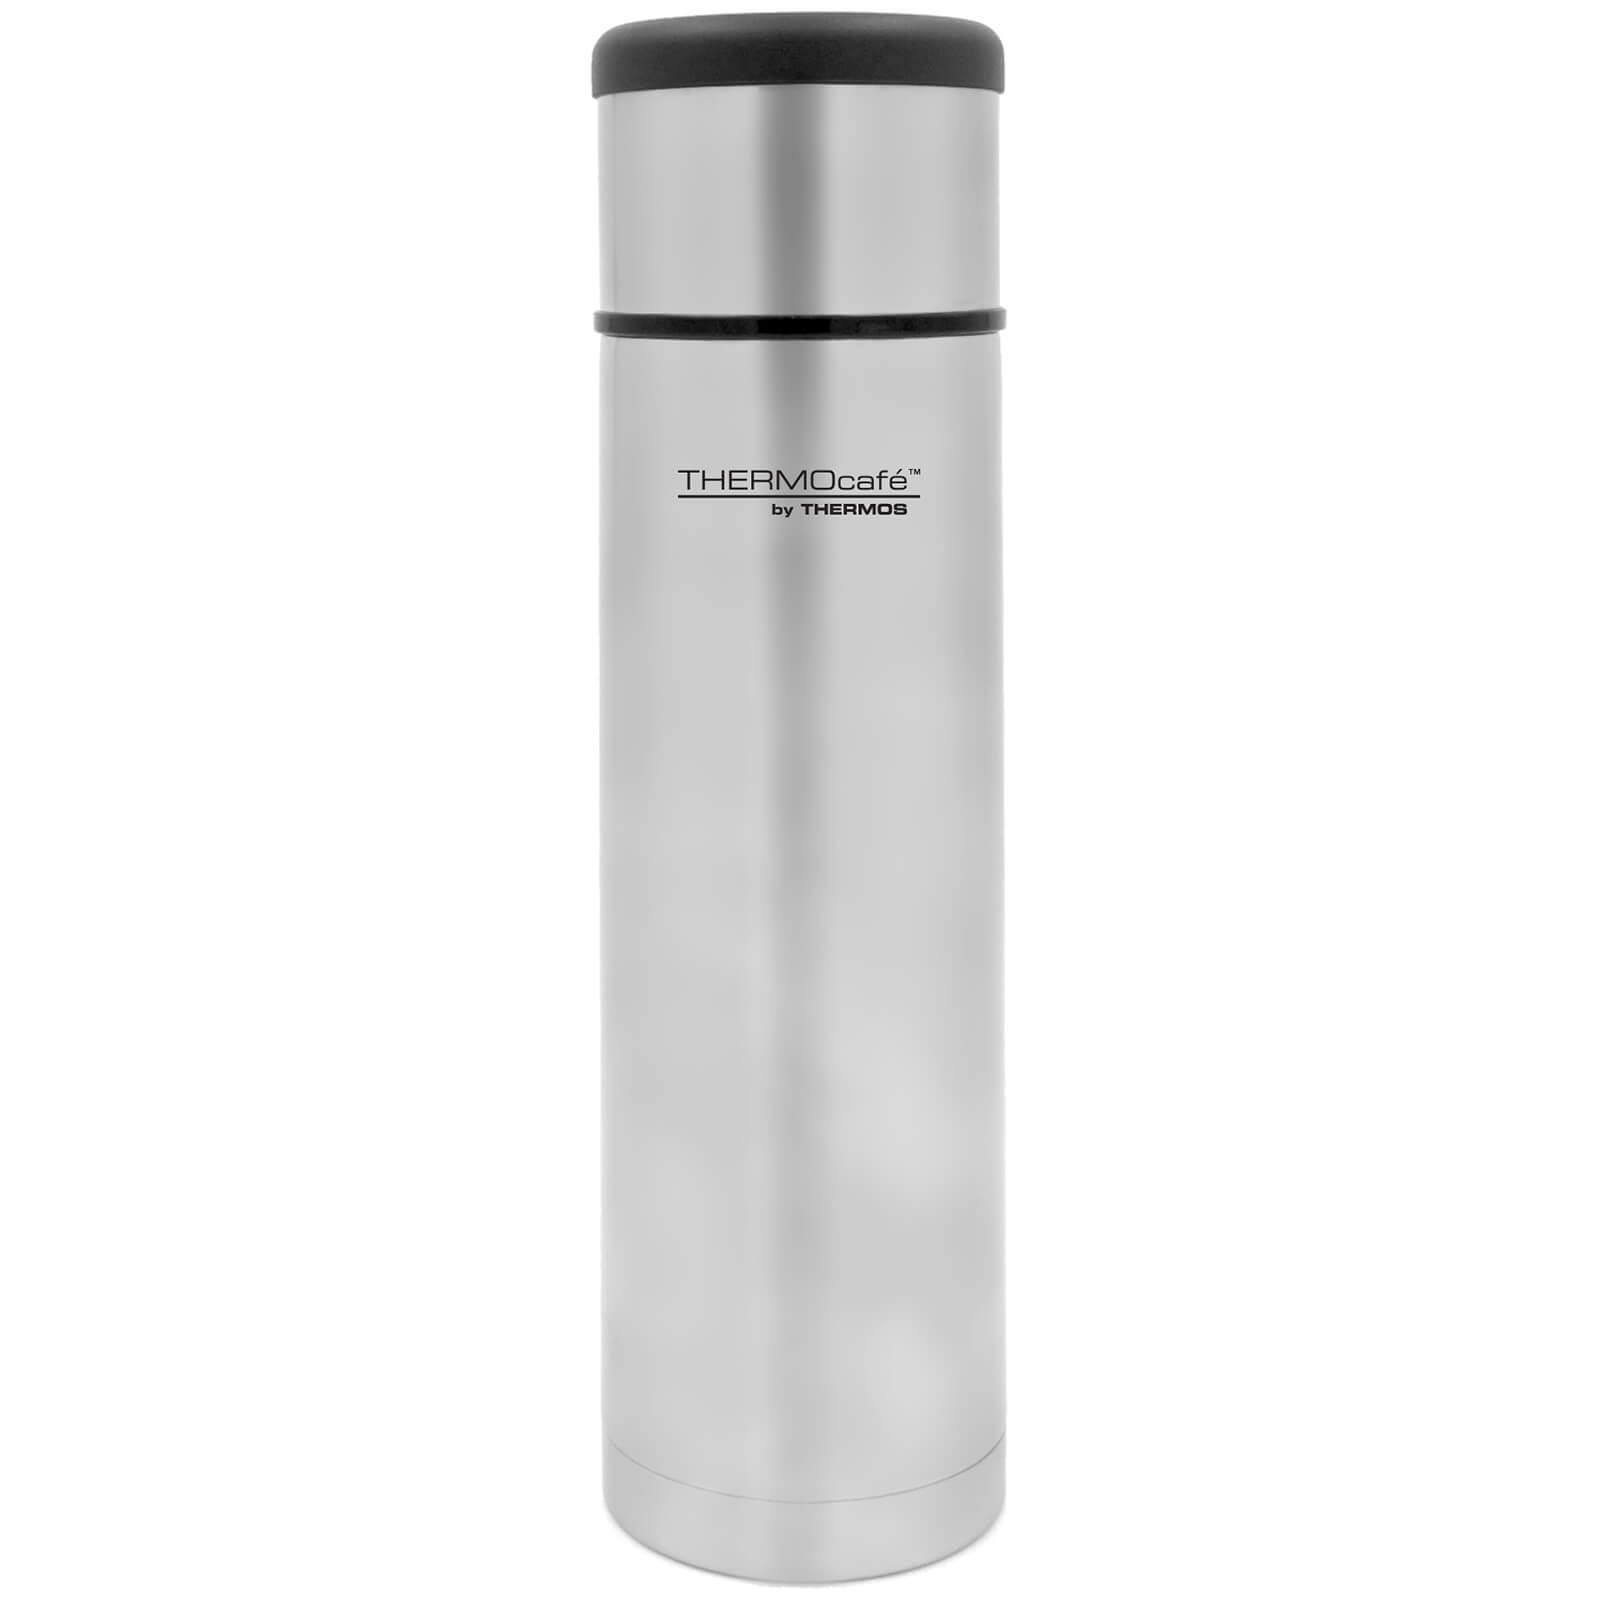 Thermos ThermoCafe Flat Top Stainless Steel Flask 1L